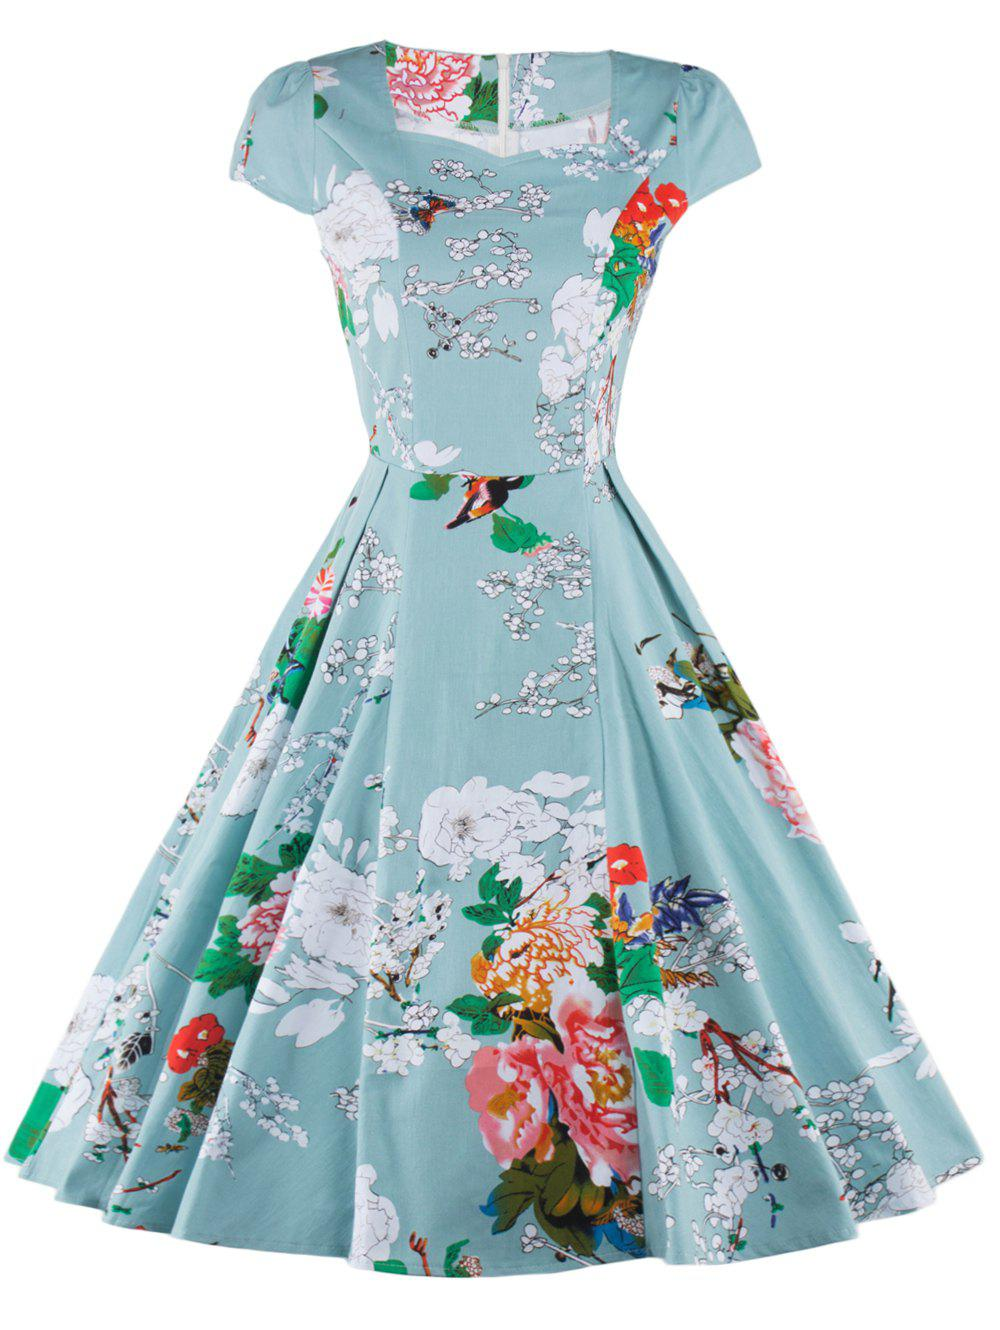 Retro Floral Print Ruffled Dress For Women